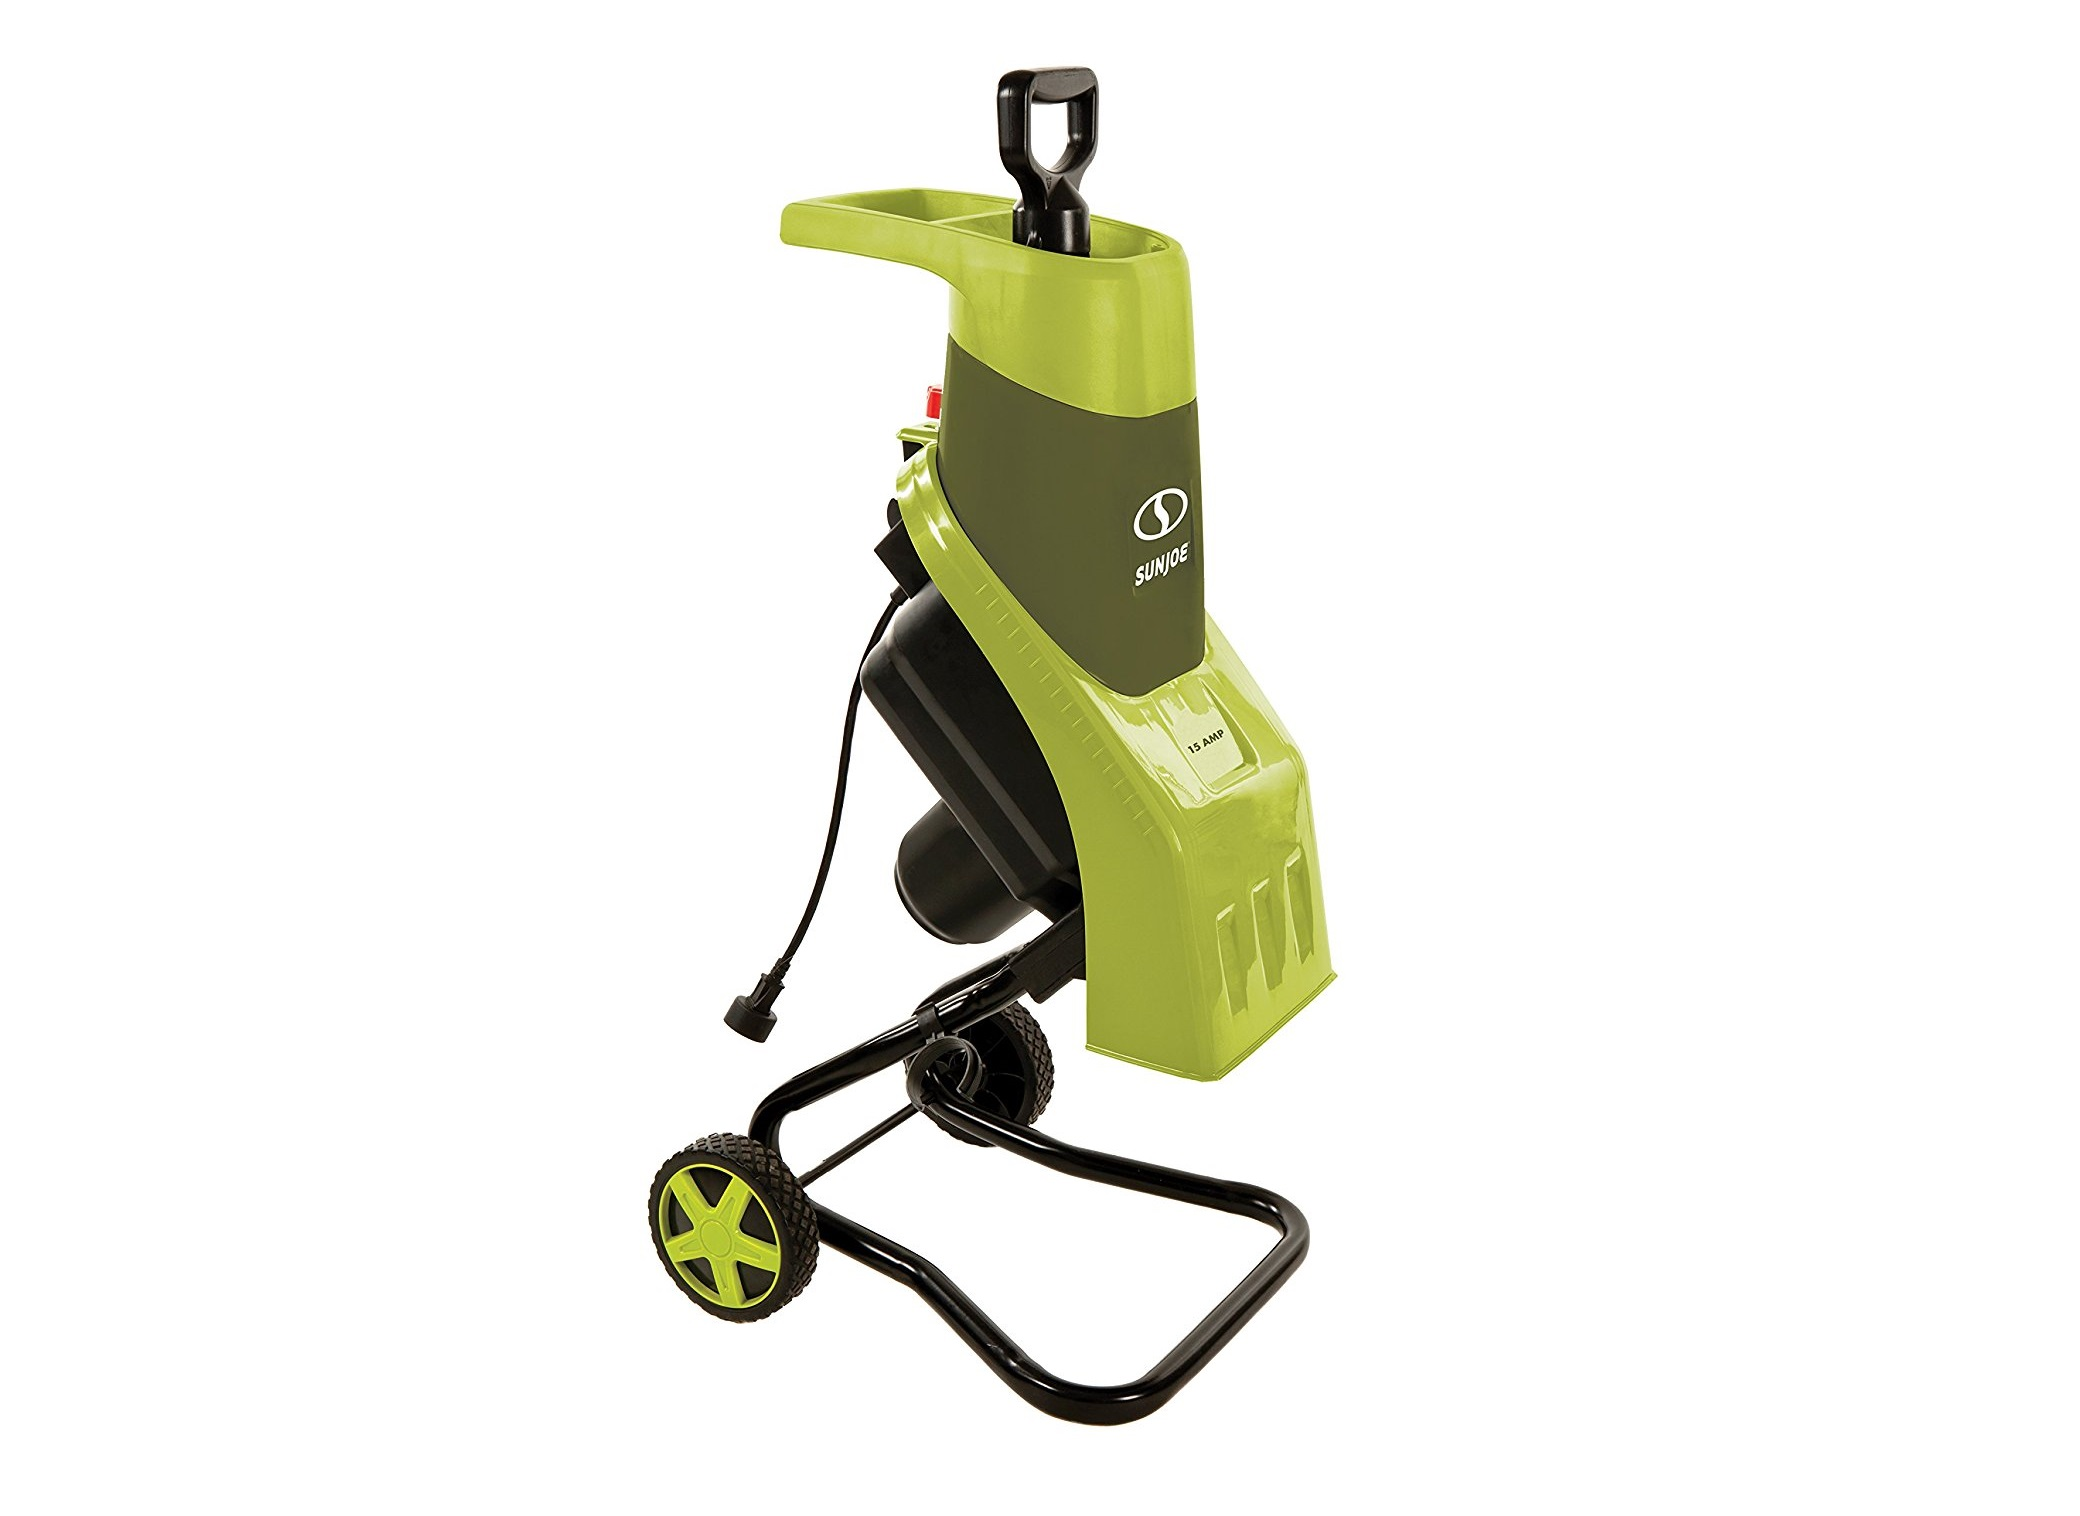 Top 10 Best Wood Chippers in 2018